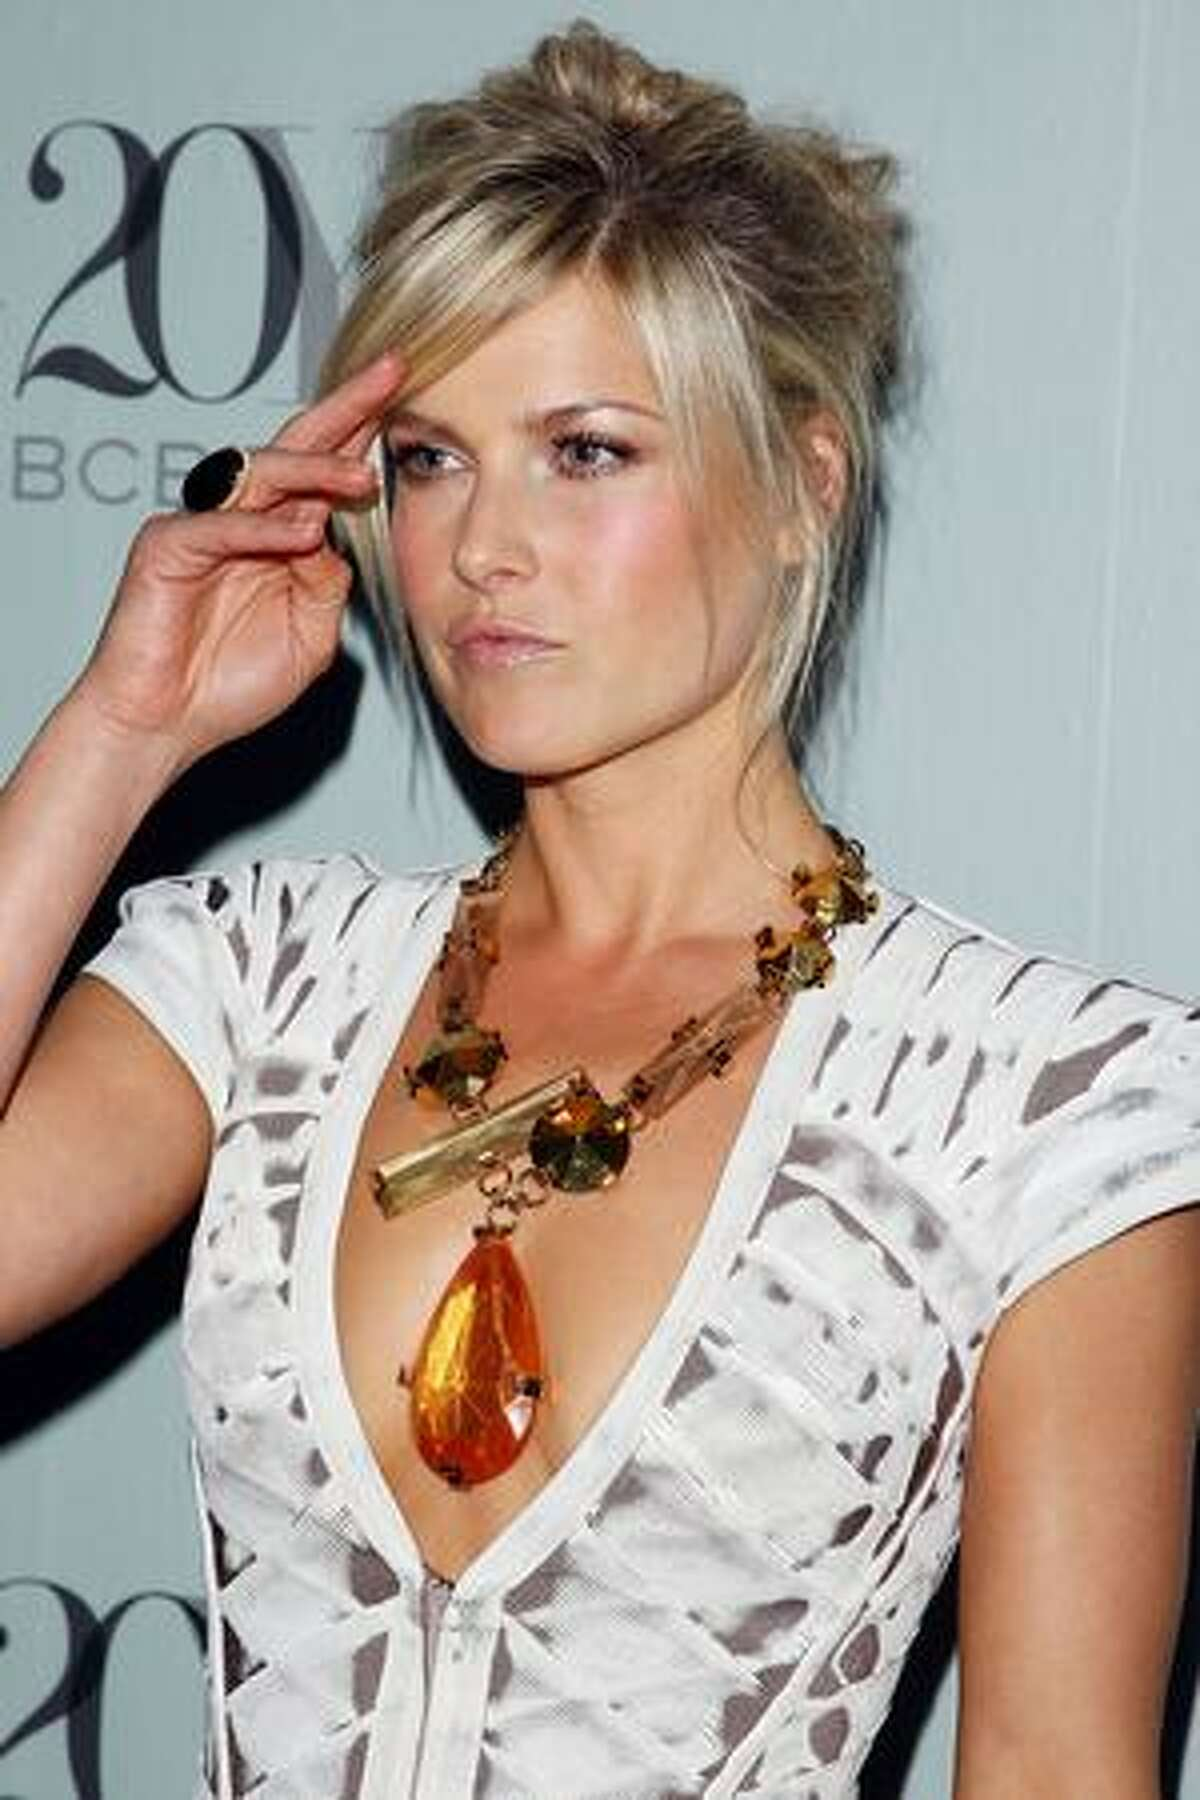 Actress Ali Larter attends the 2009 Whitney Contemporaries Art Party And Auction at Skylight in New York City.